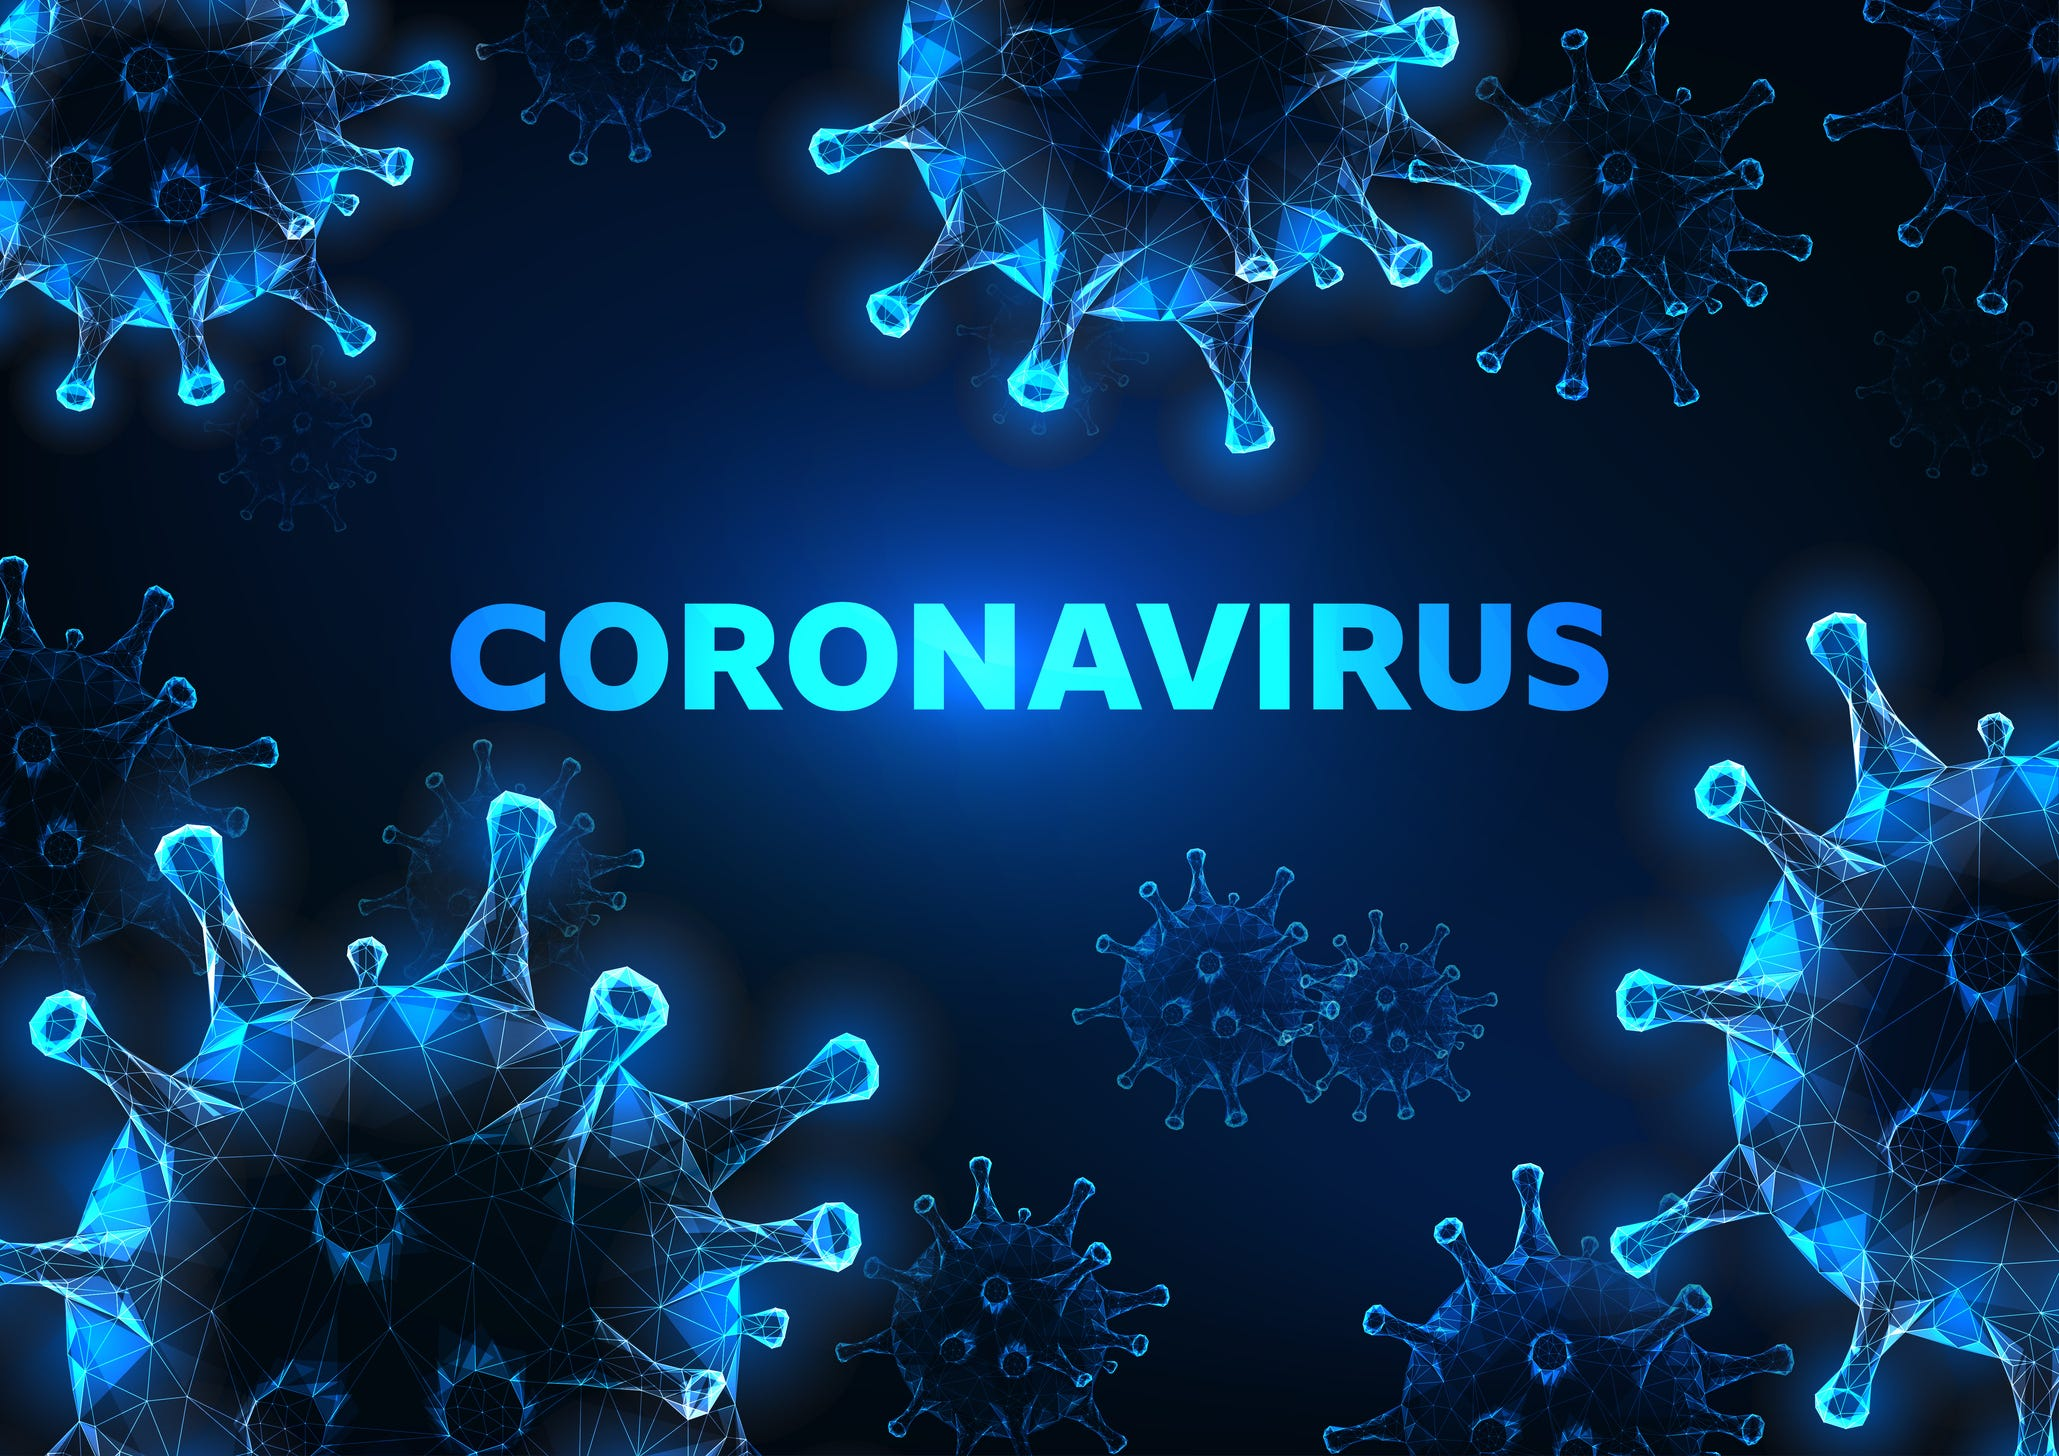 Special coverage: Latest coronavirus news